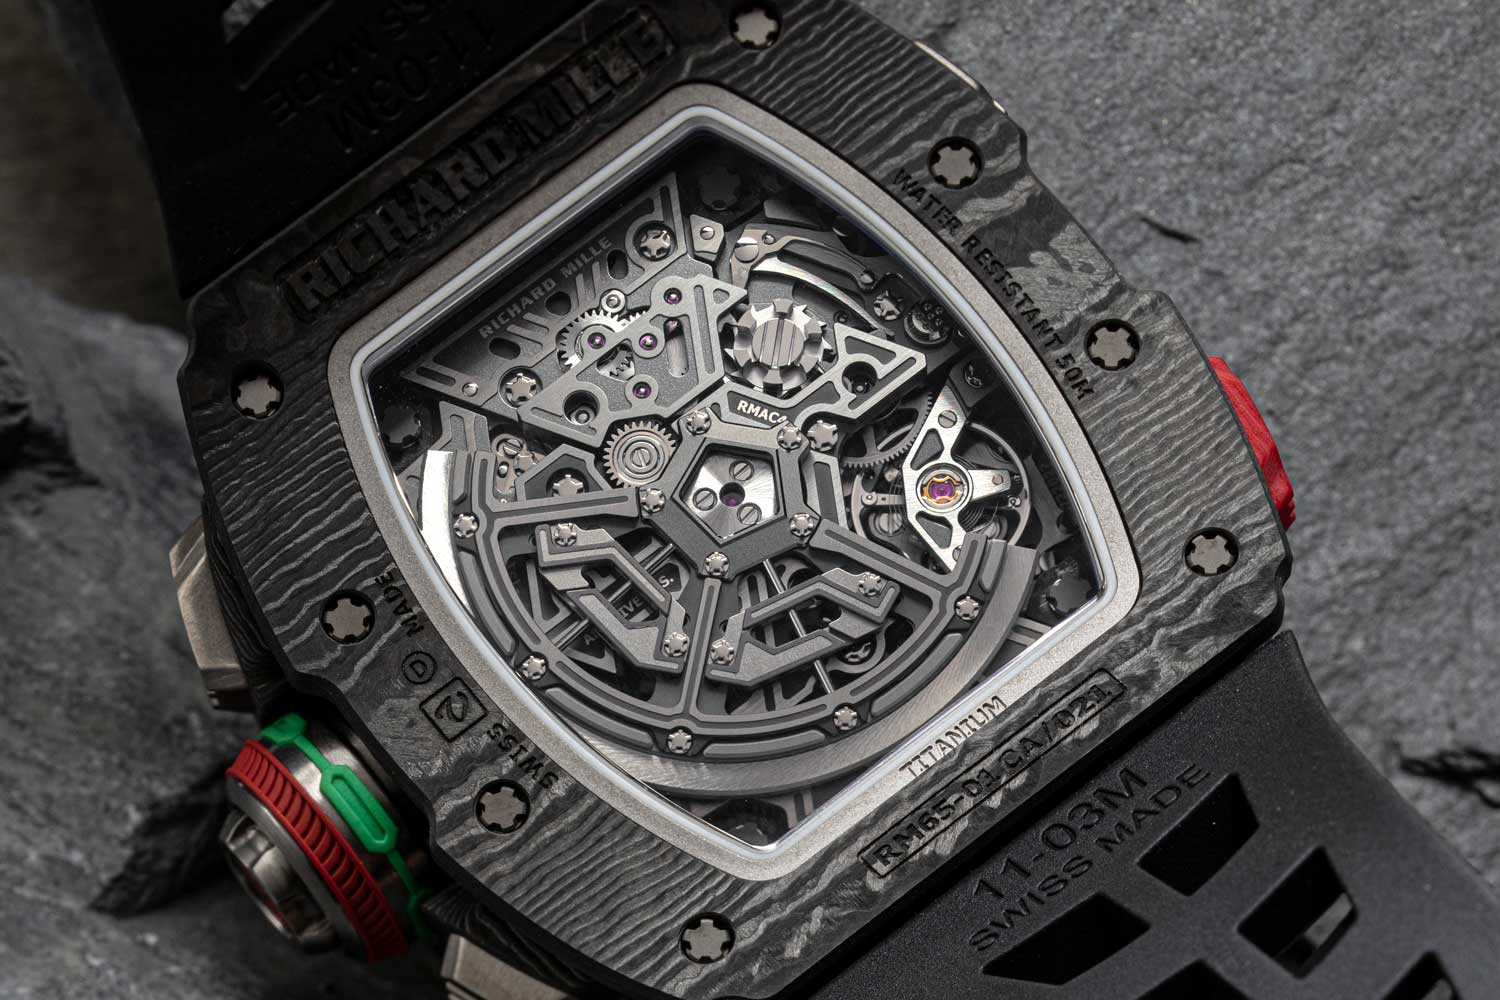 Seeing is believing, the RMAC4, although based off the VMF 6710, looks nothing like it and features a split seconds function, a rapid winding pusher that can fully wind the movements barrel with 125 pushes and a variable inertia/geometry rotor that can be set up to correspond to the owner's level of energy output; the RMAC4 also has every bridge made out of grade 5 titanium before it is fully skeletonized (©Revolution)